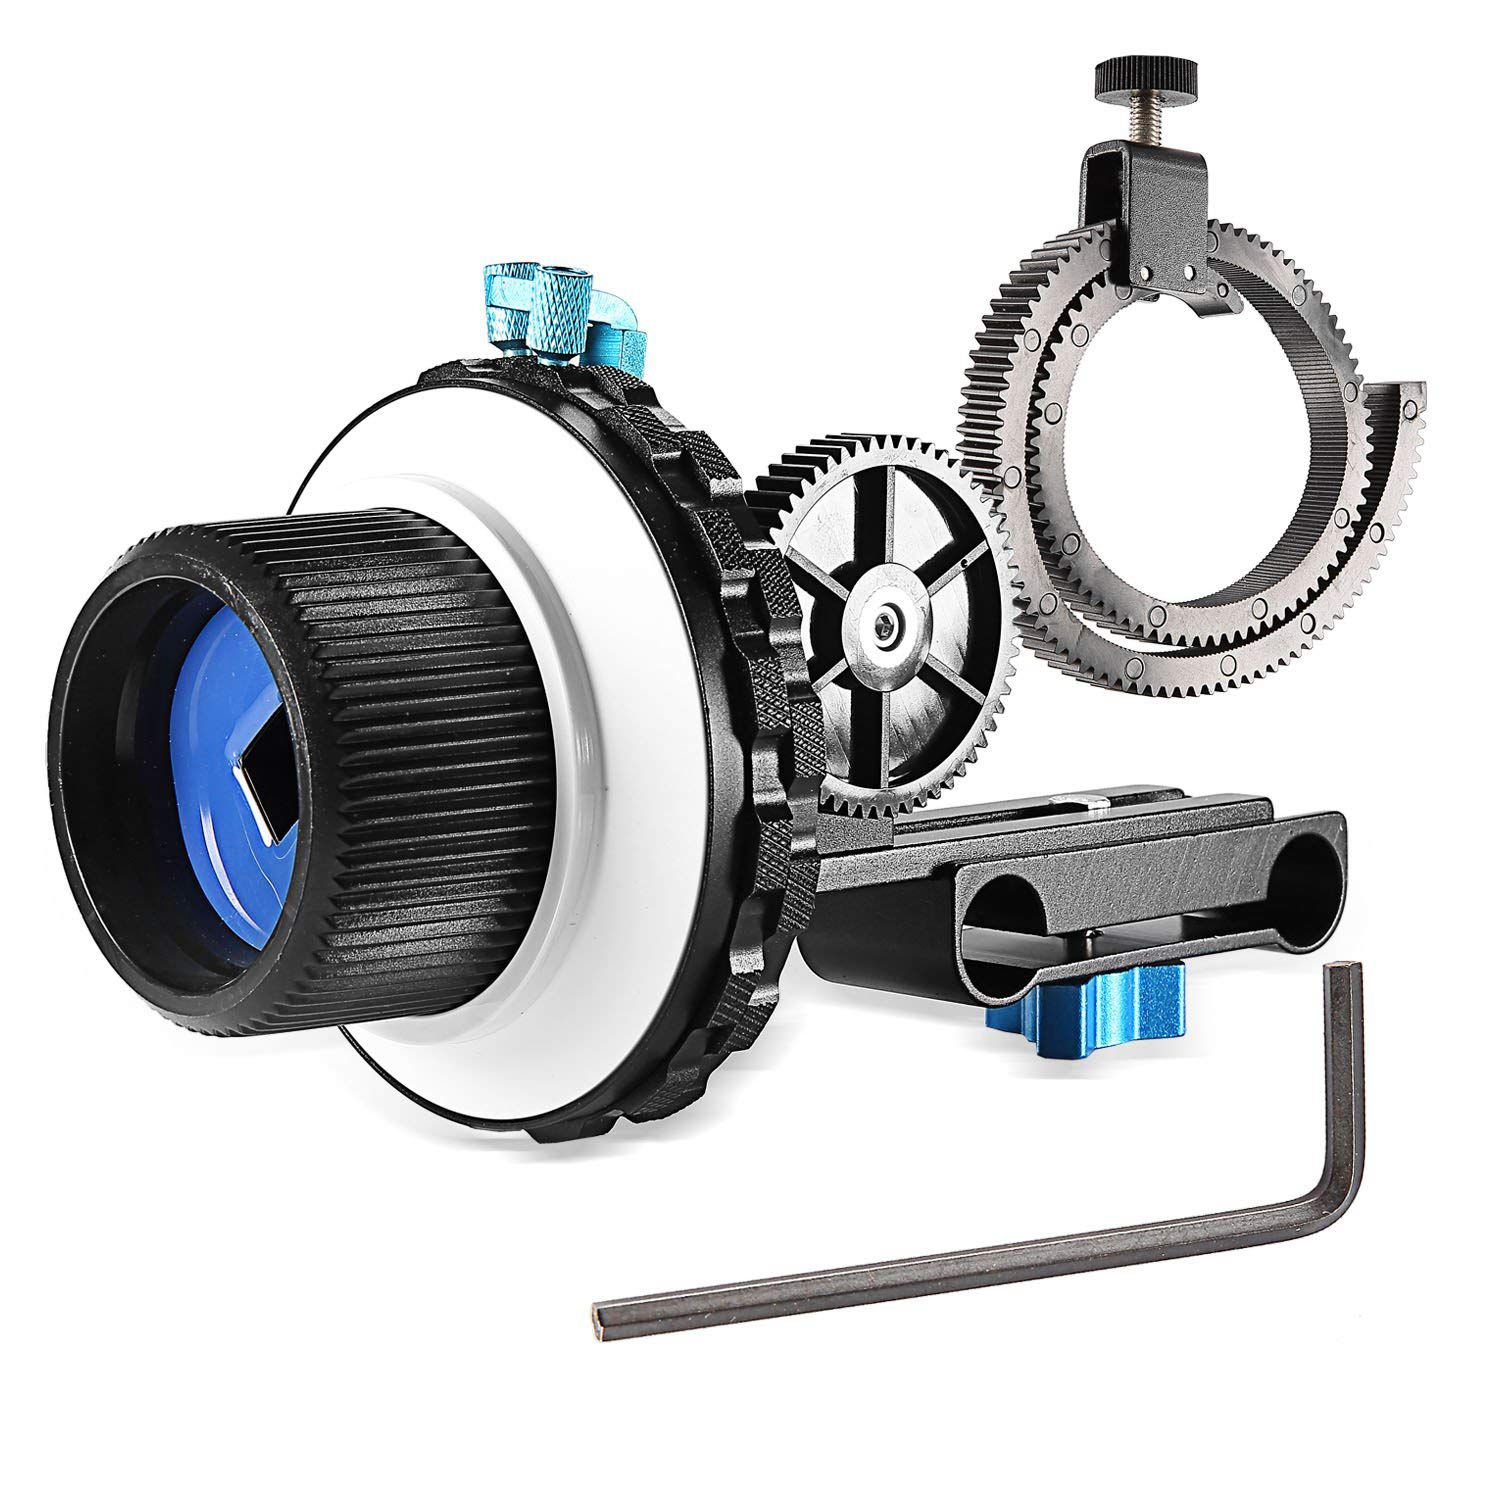 A-B Stop Follow Focus C2 With Gear Ring Belt For DSLR Cameras Such As Nikon,Canon,Sony DV/Camcorder/Film/Video Cameras,Fits 15